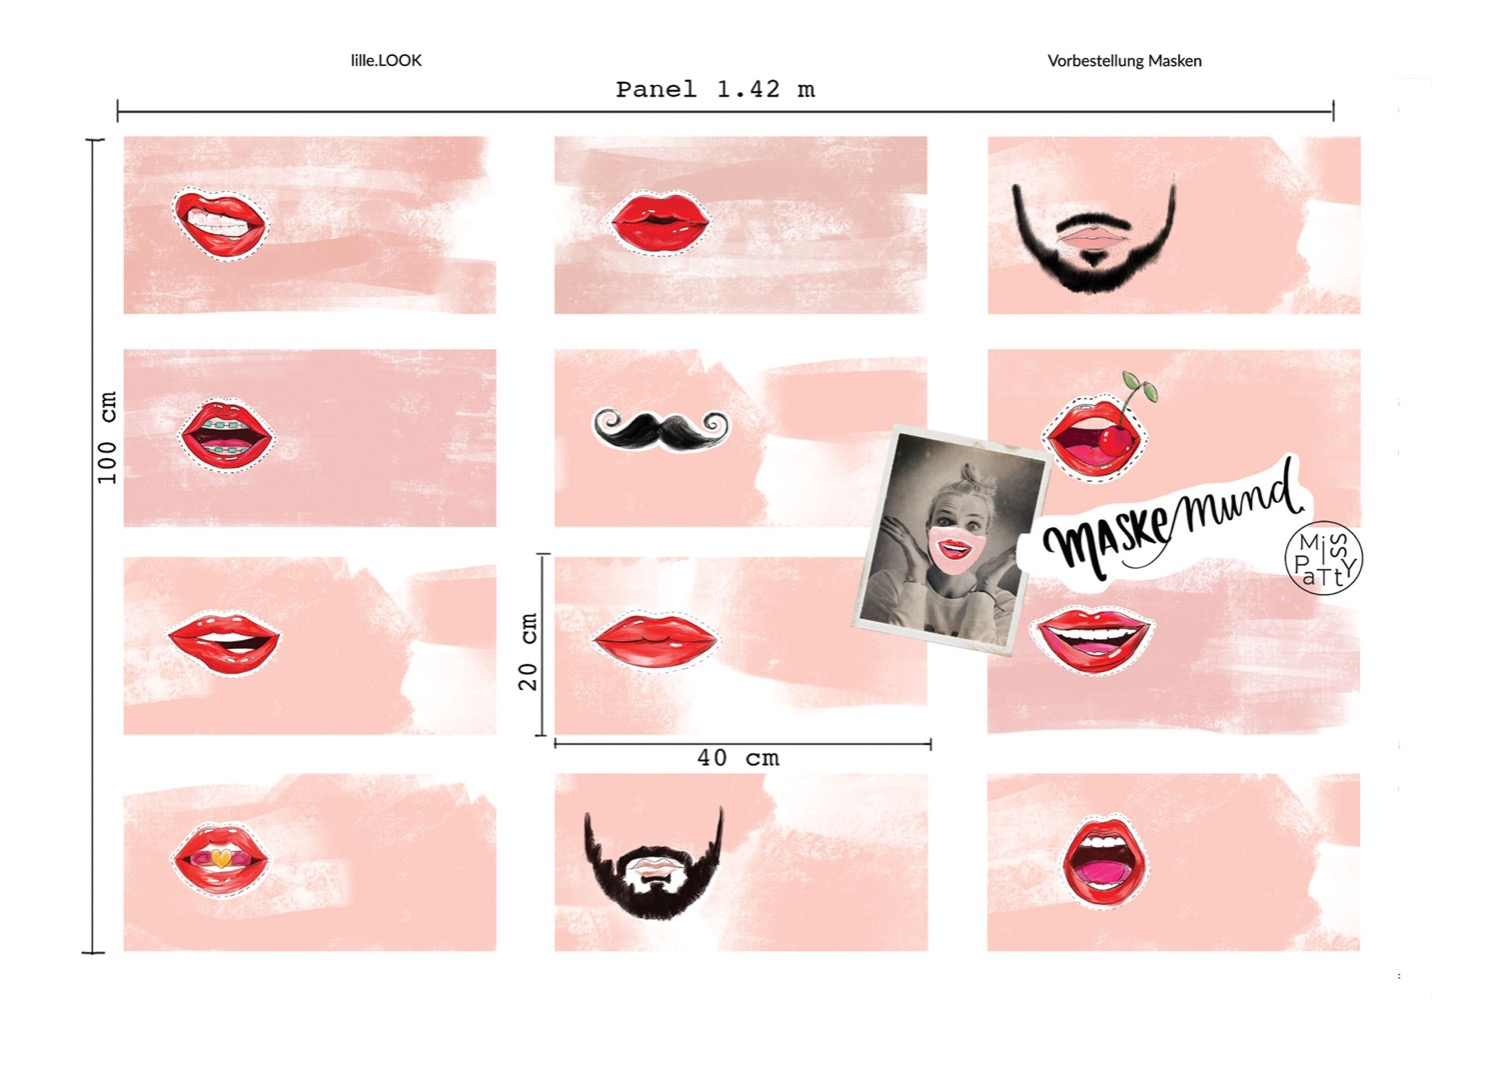 Panel Masken Mund by Miss Patty